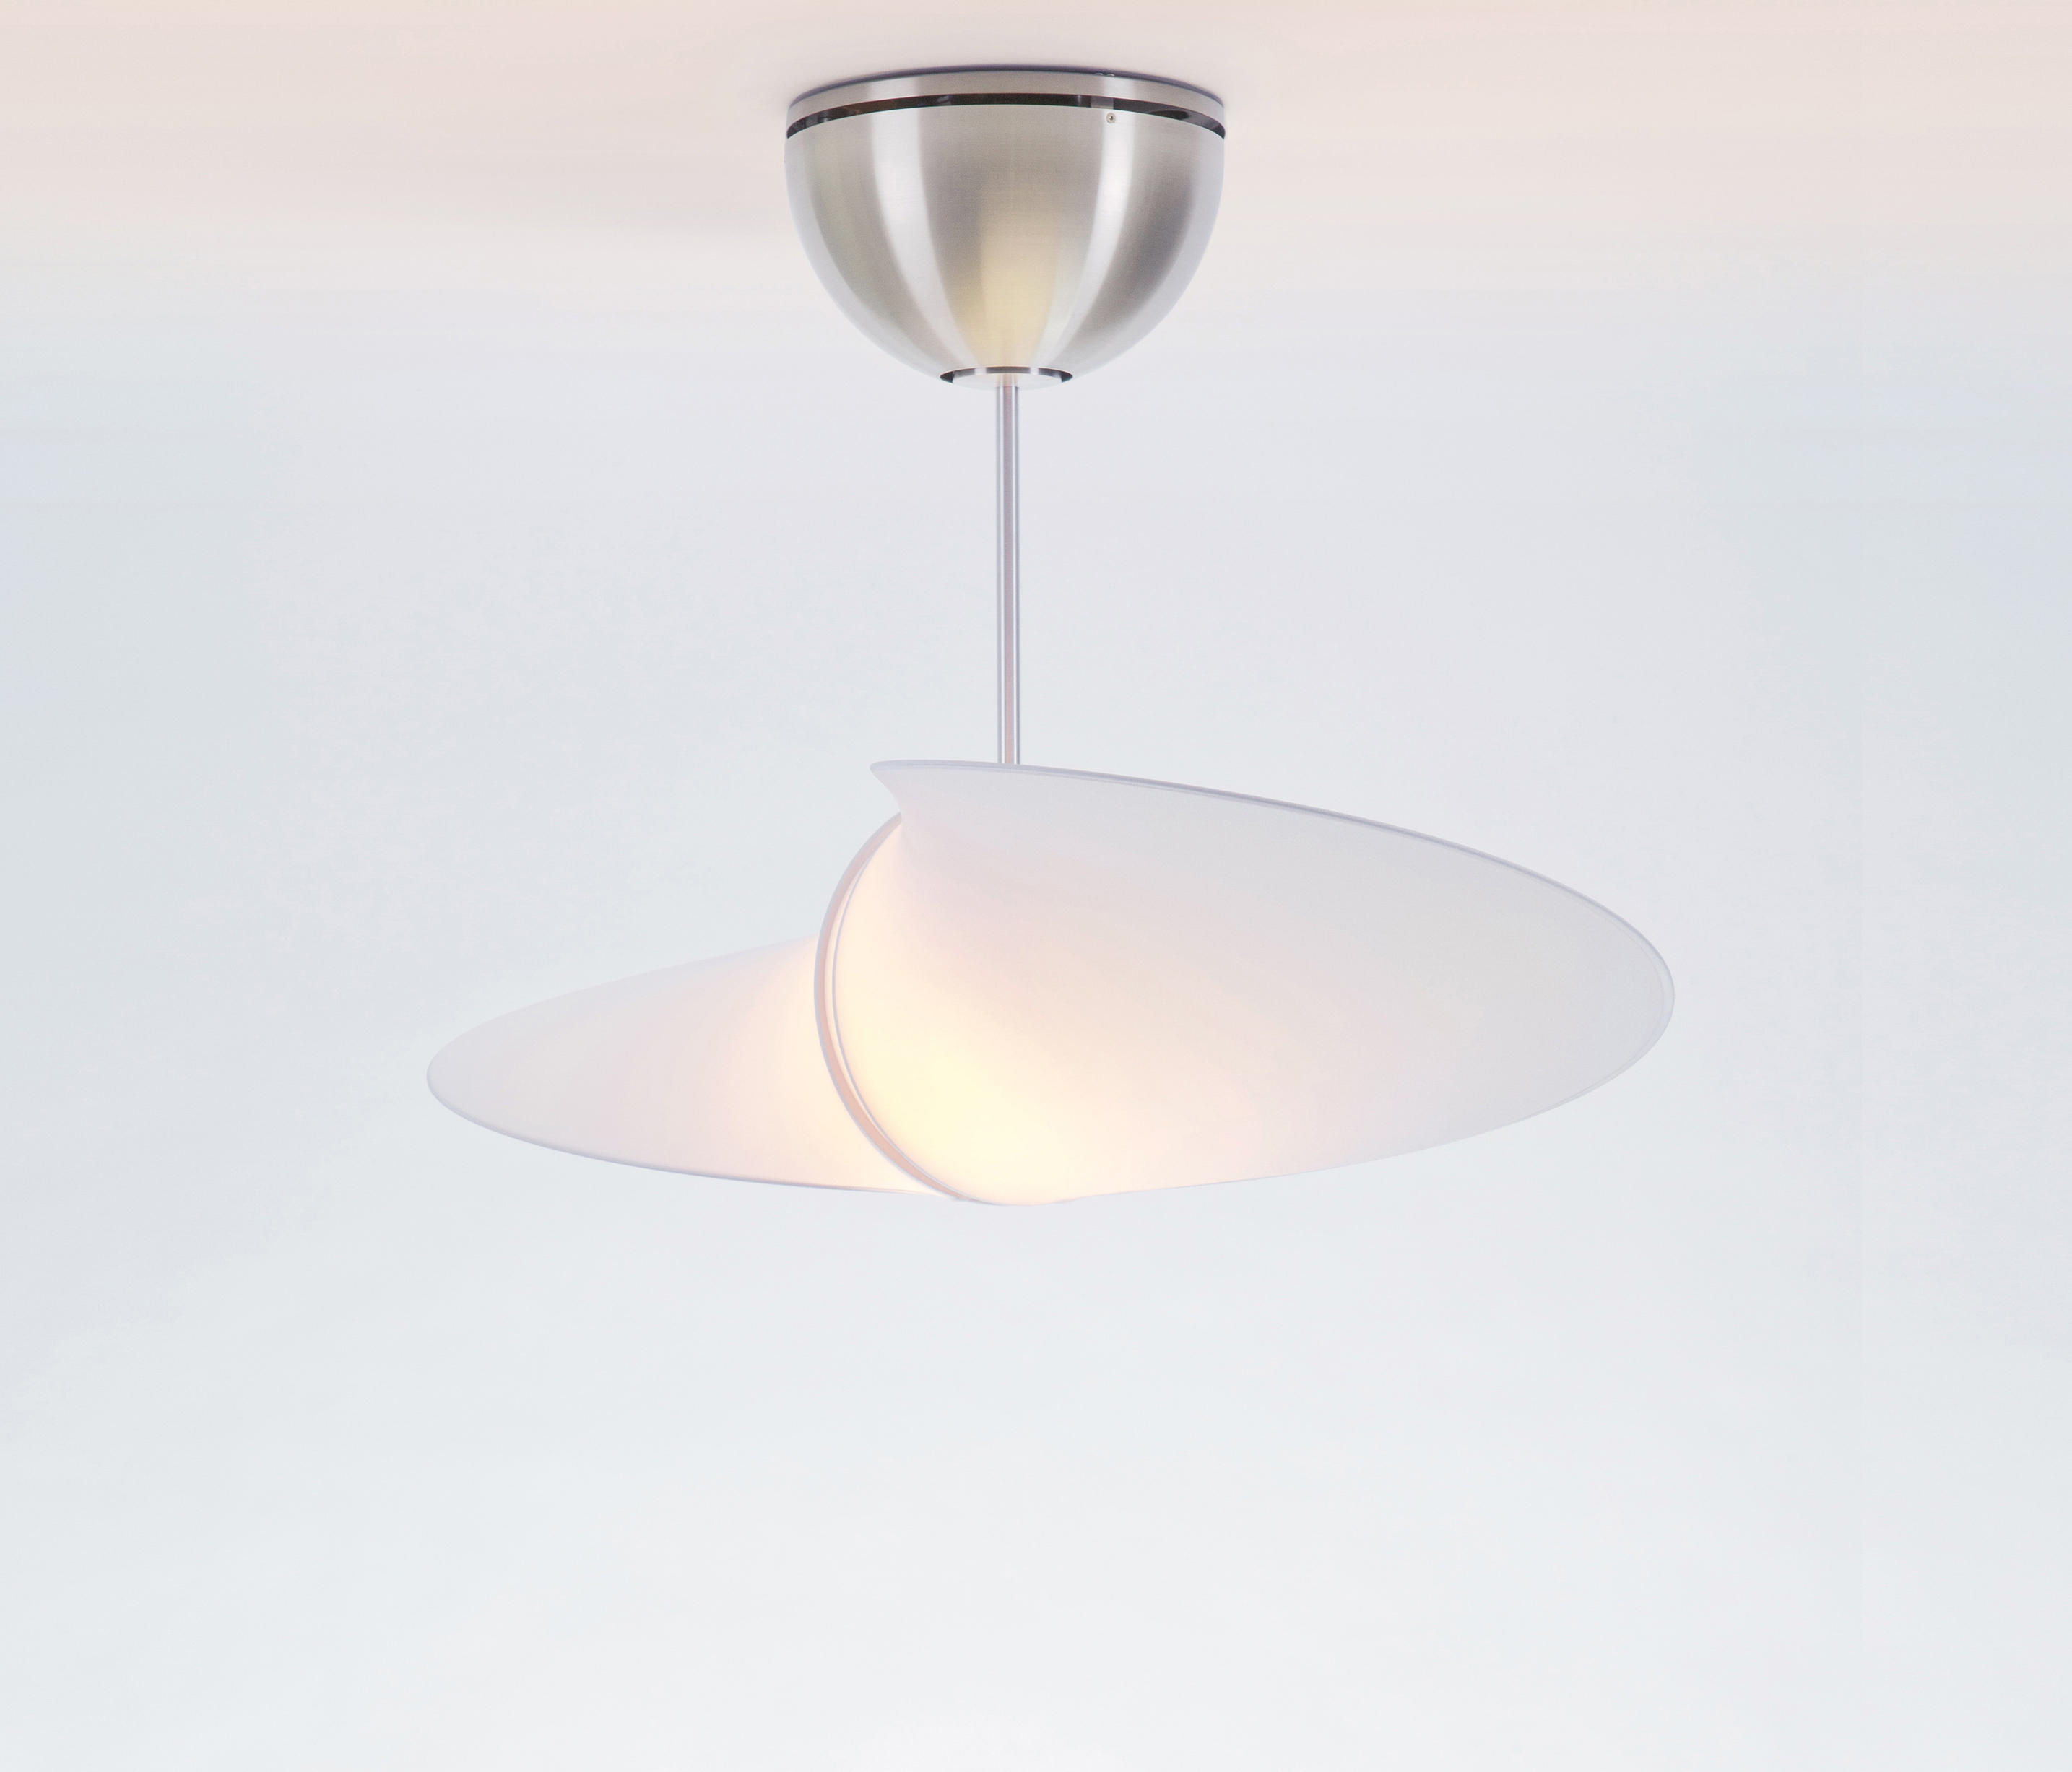 Serien Lighting Propeller - Ceiling Lights From Serien.lighting | Architonic